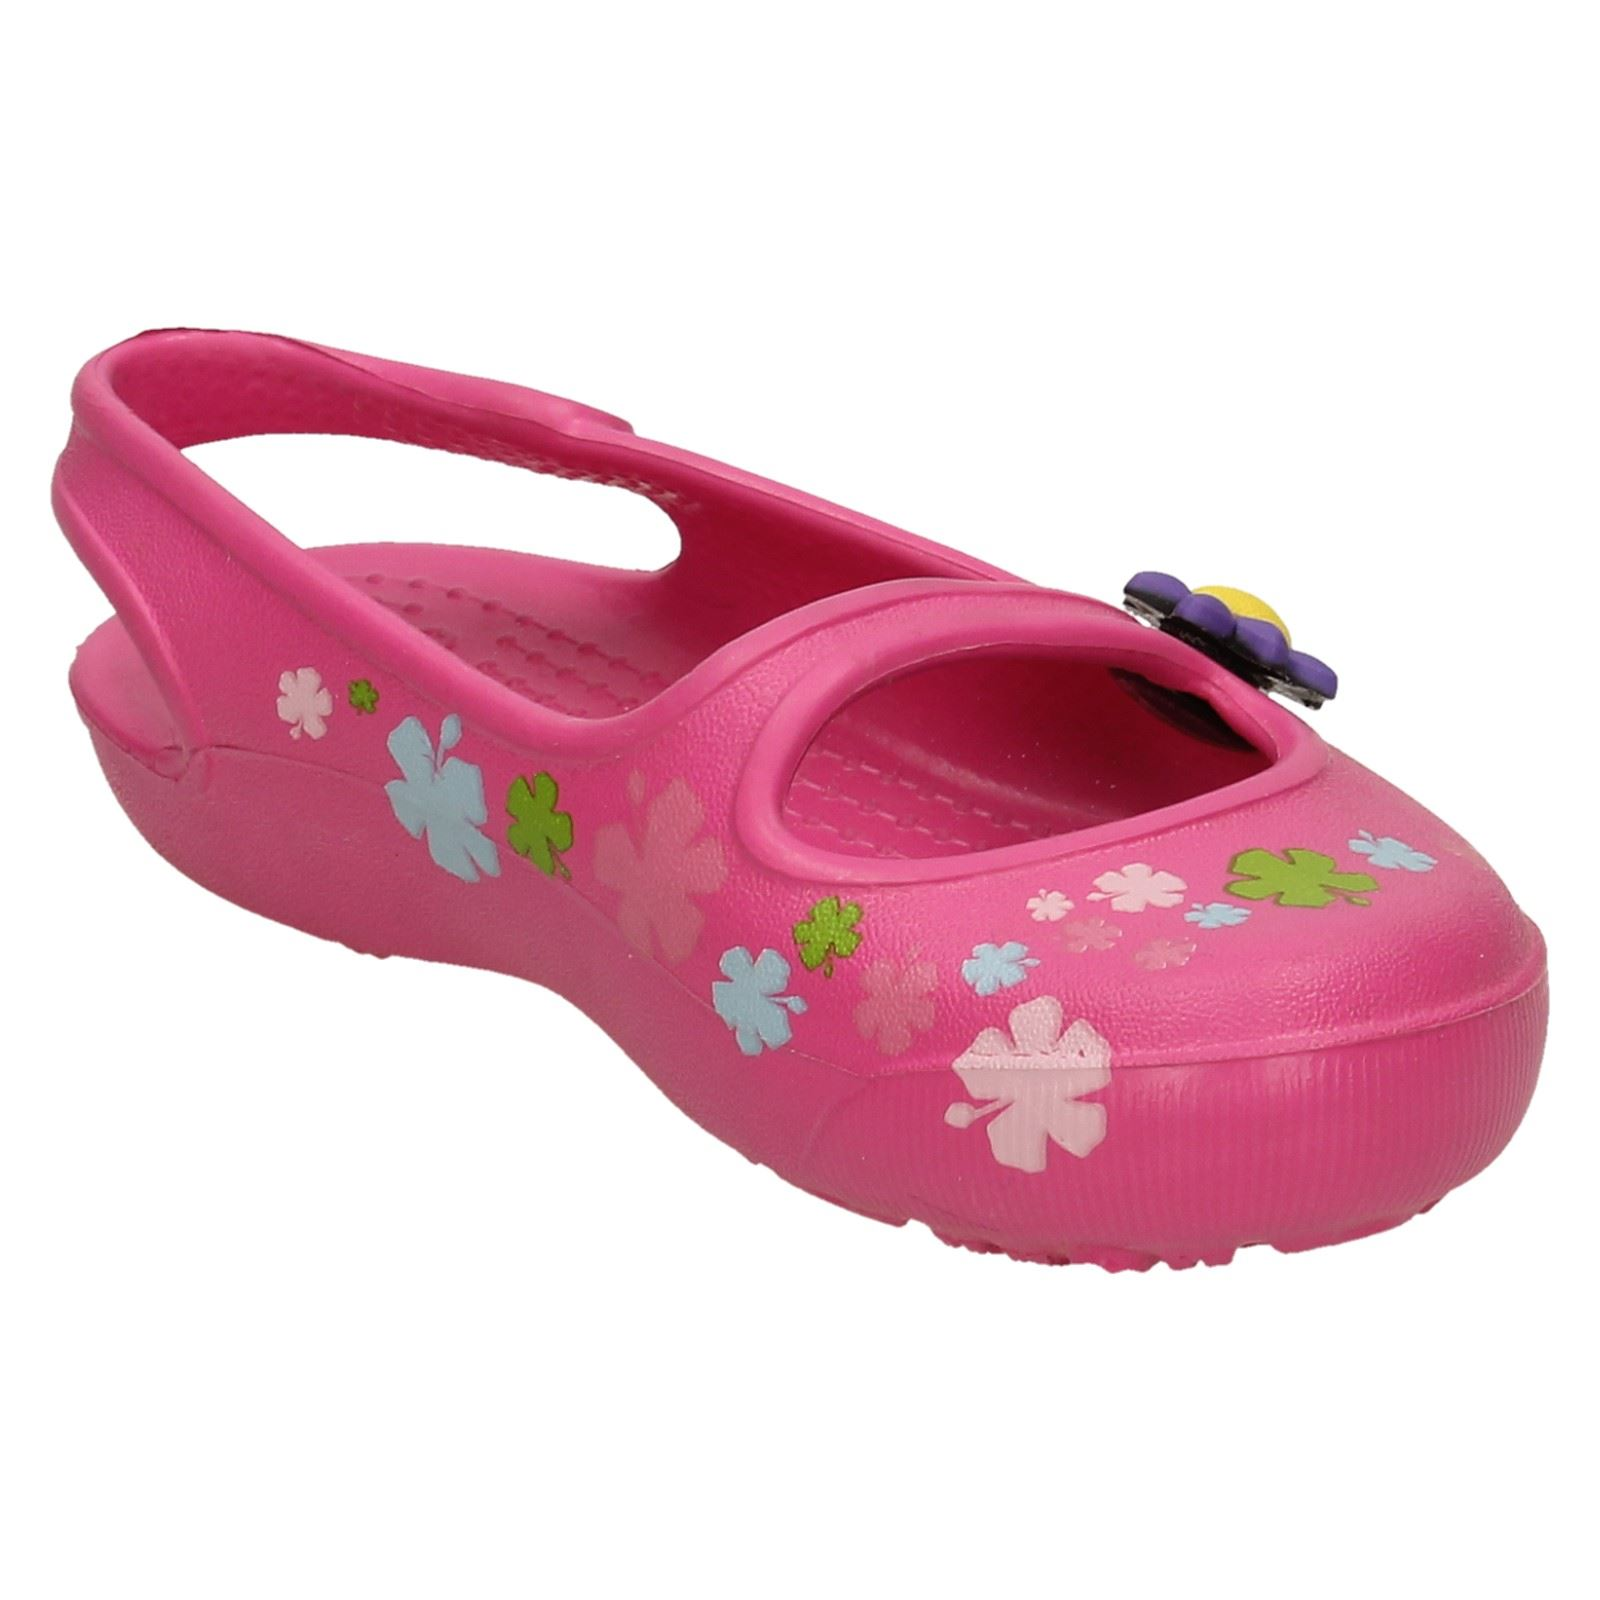 33afd4f96 Girls Crocs Gabby Flowers Slip on Sandals Fuchsia 4 UK Standard for ...